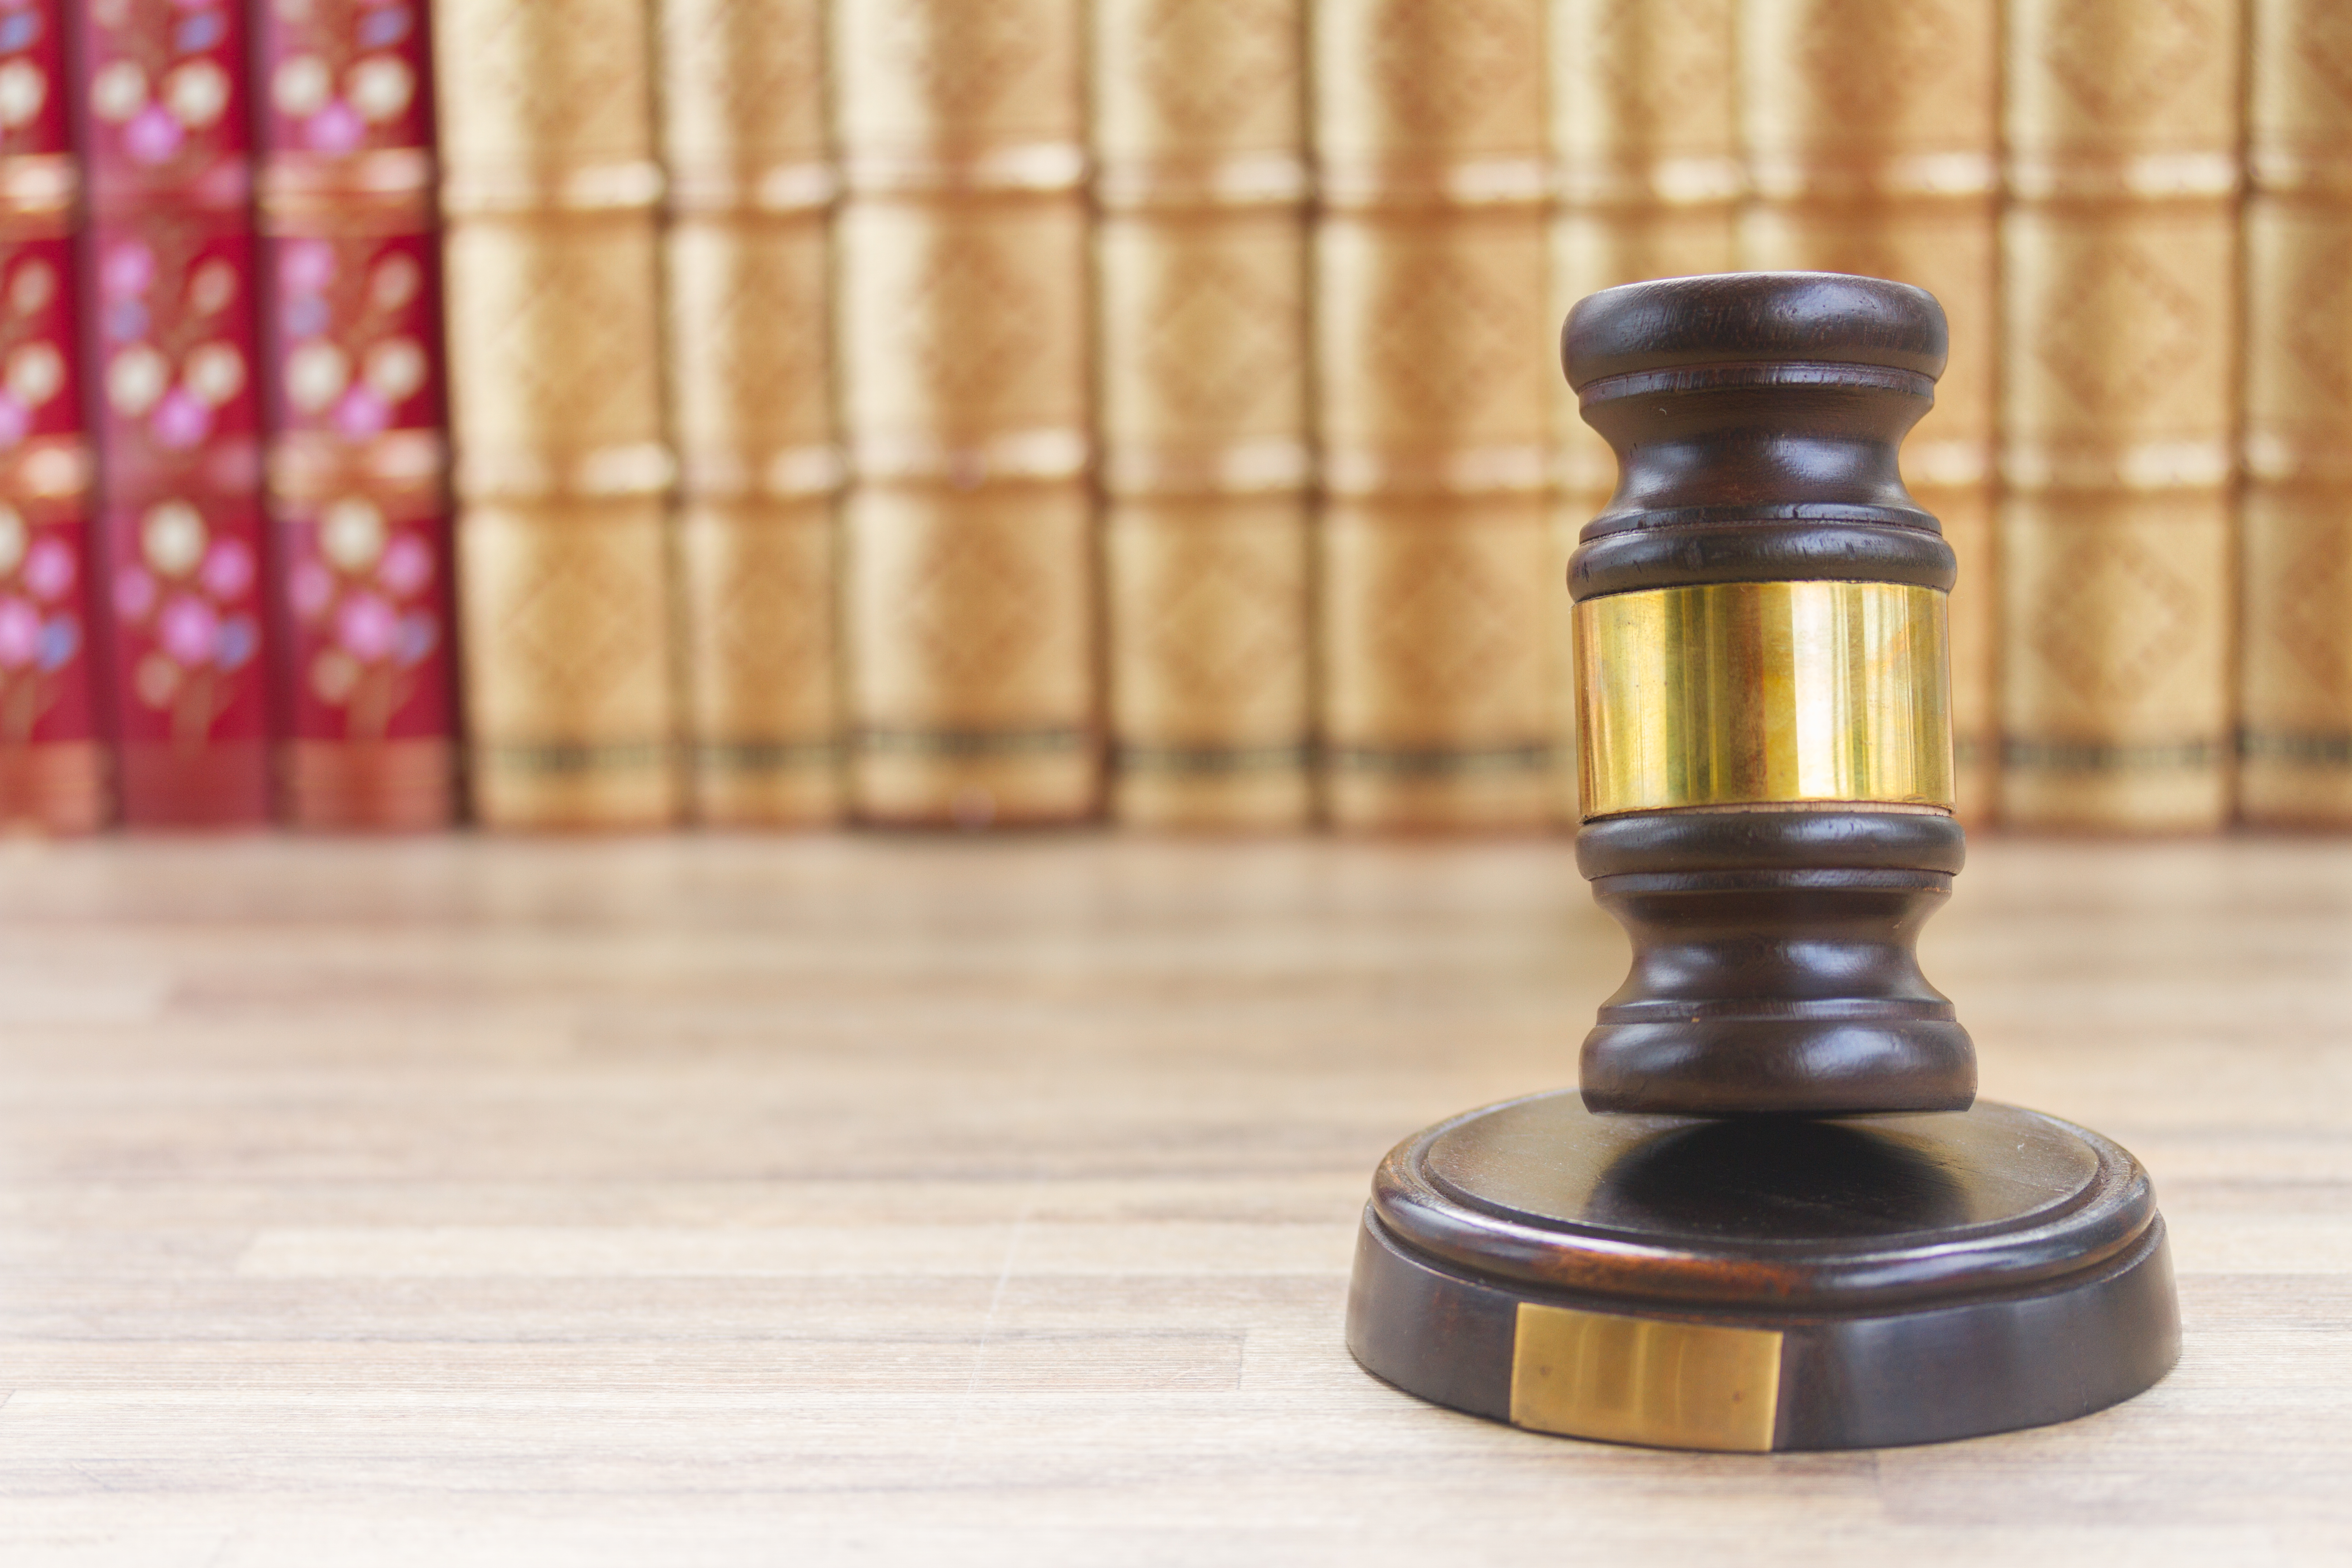 Oracle sues Envisage claiming unauthorized database use amid licensing crackdown